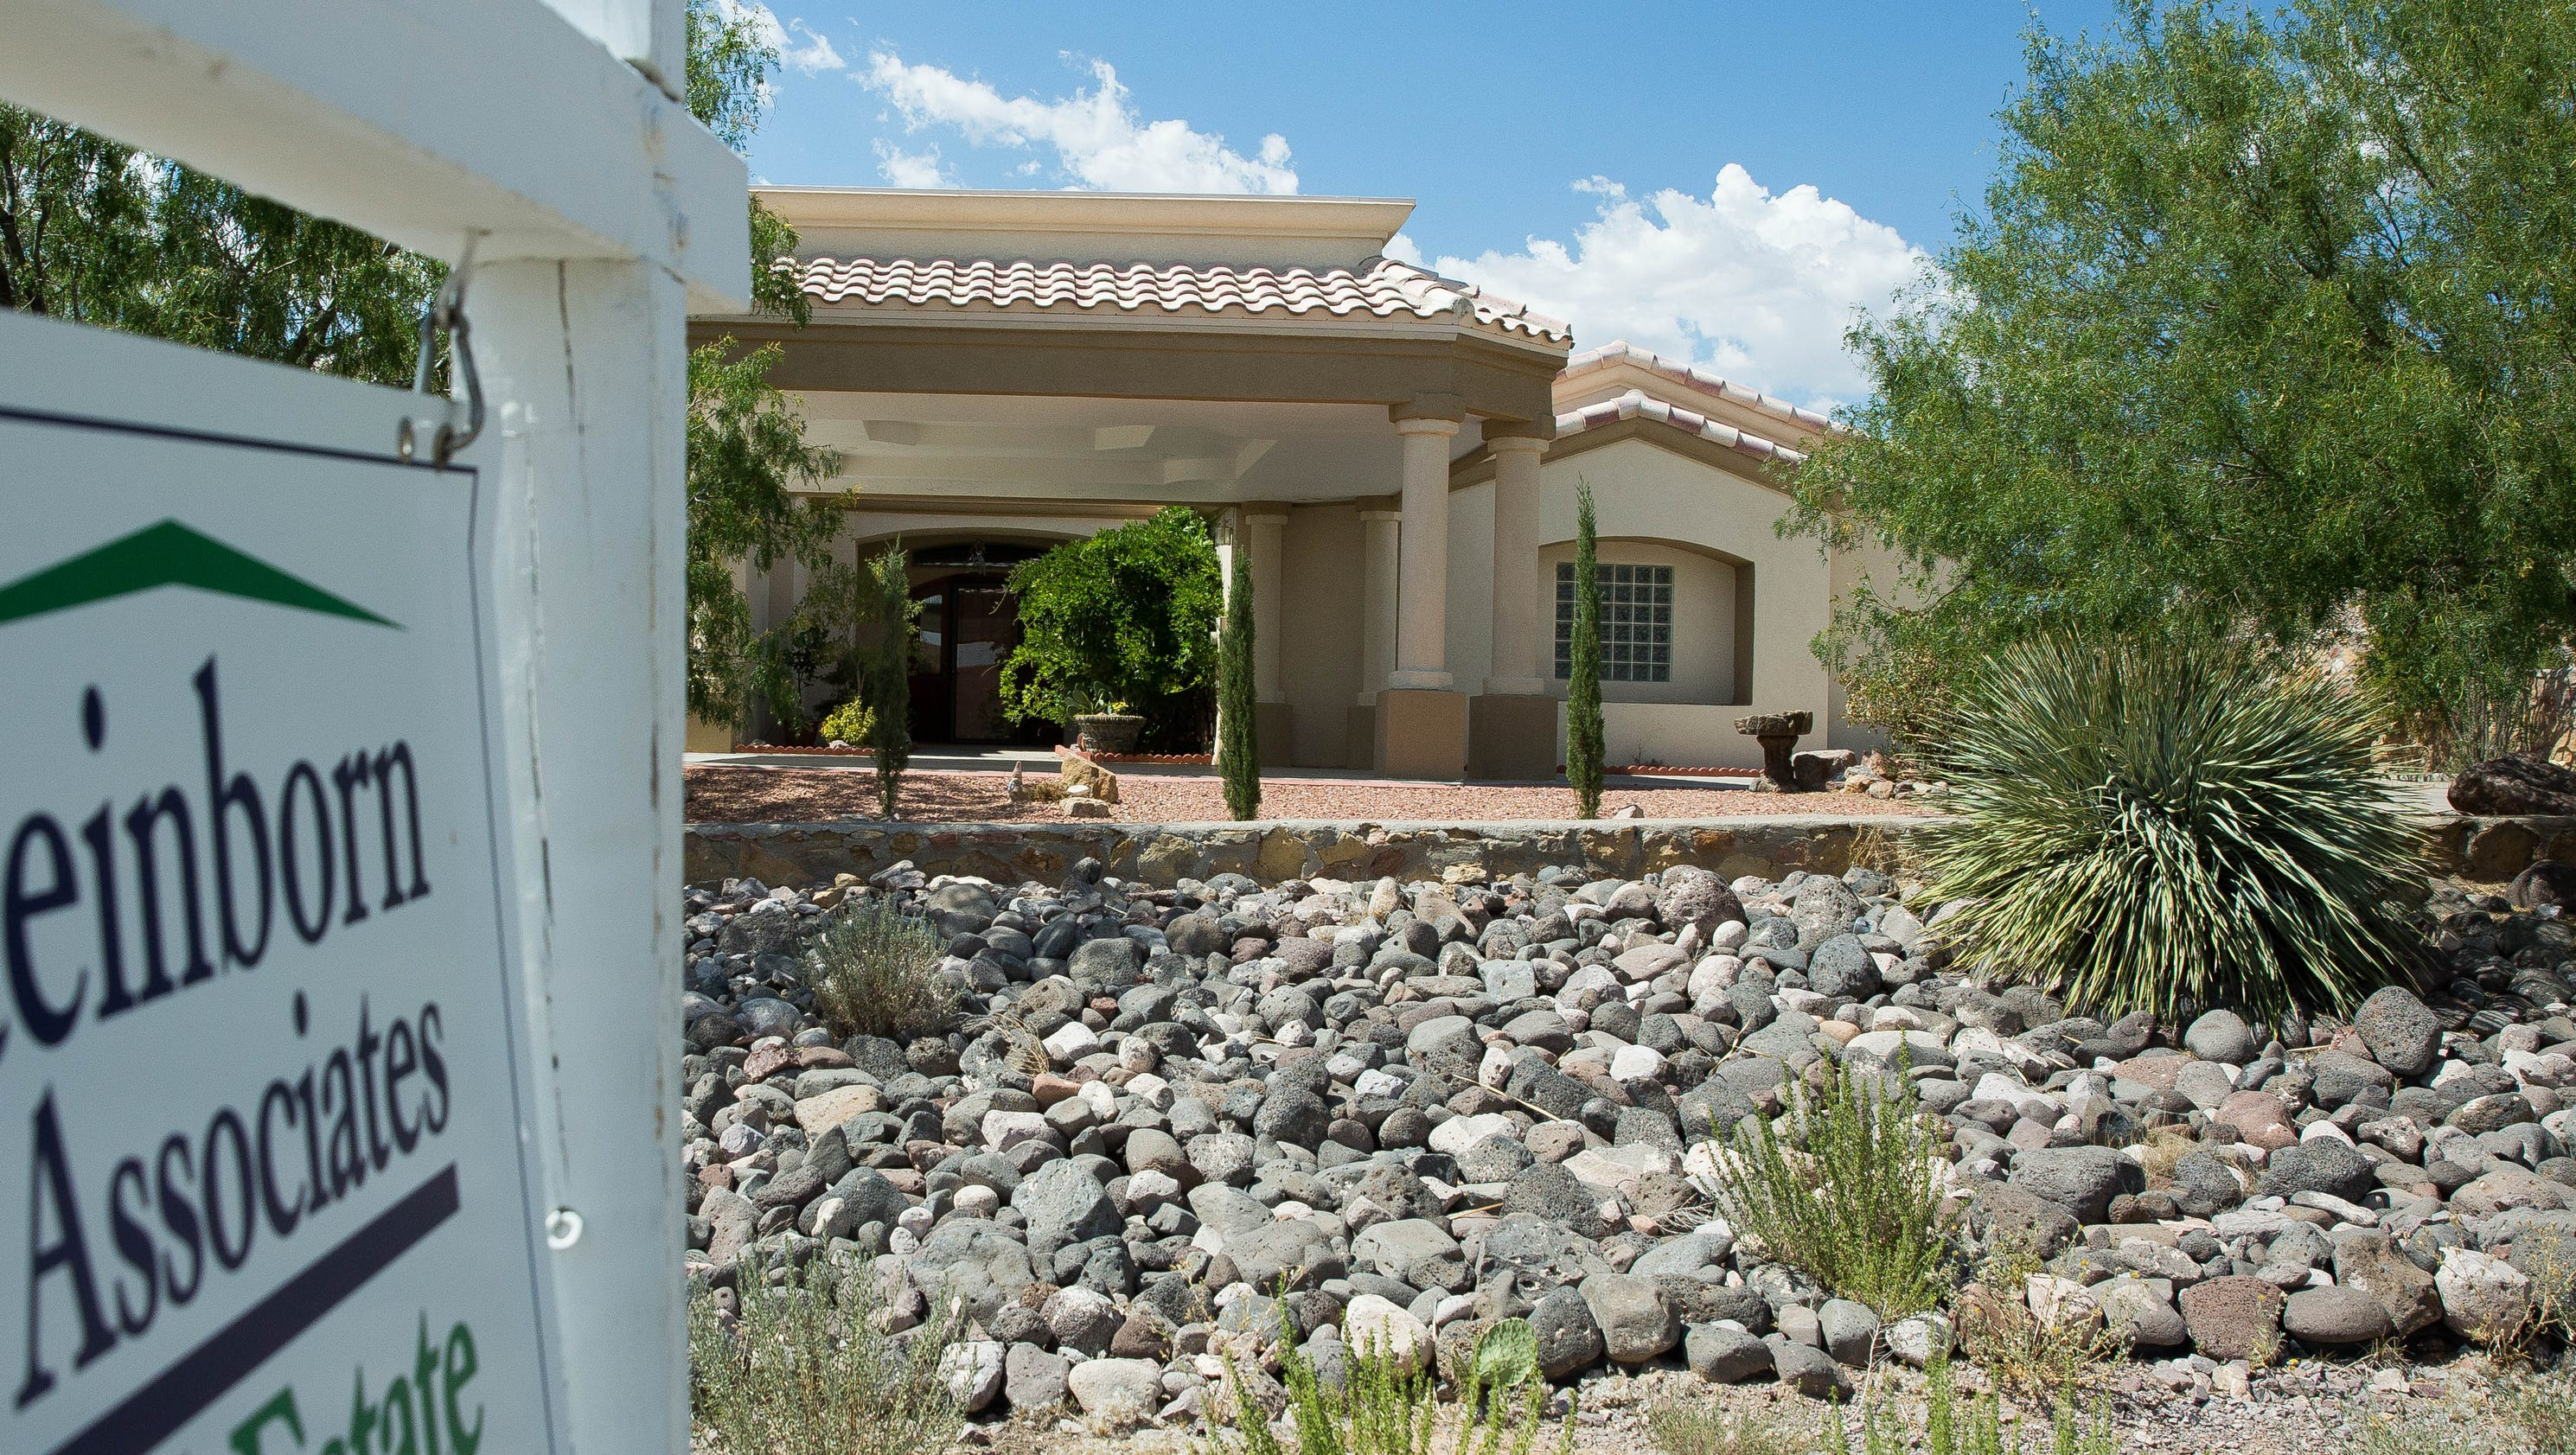 High End Homes Heat Up Las Cruces Real Estate Market